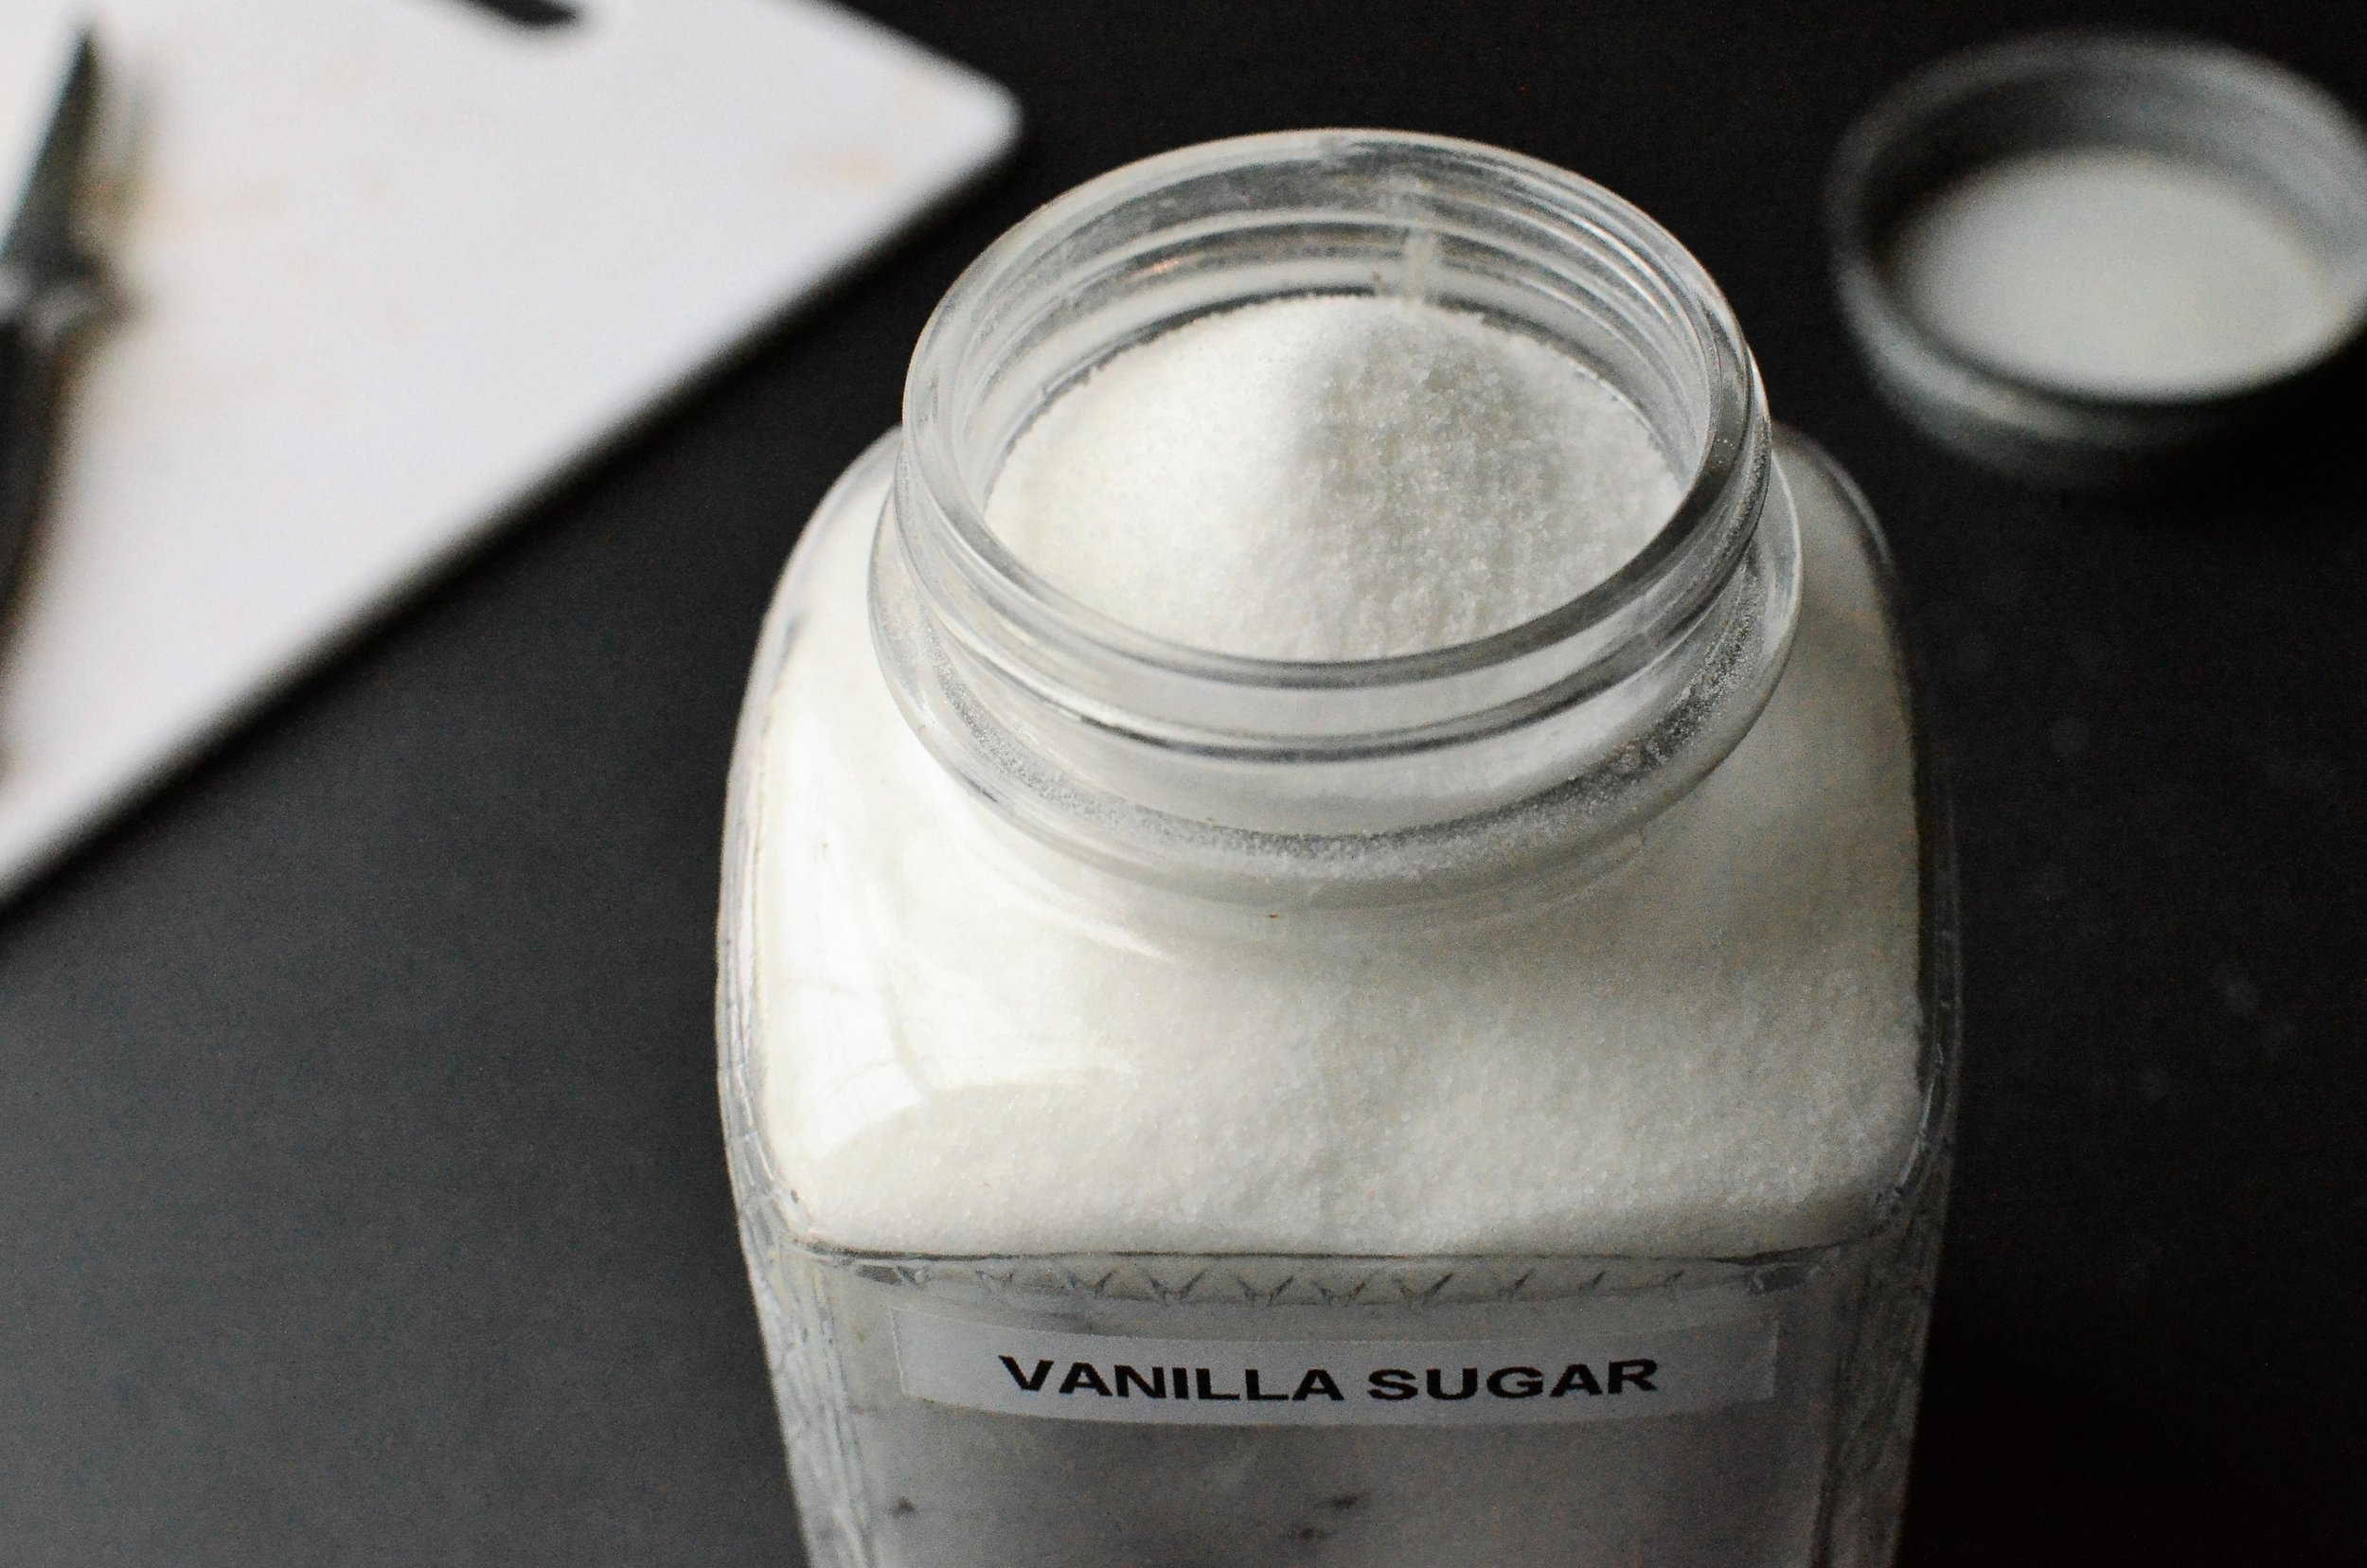 Yes, you can make your own vanilla sugar at home - ButterYum